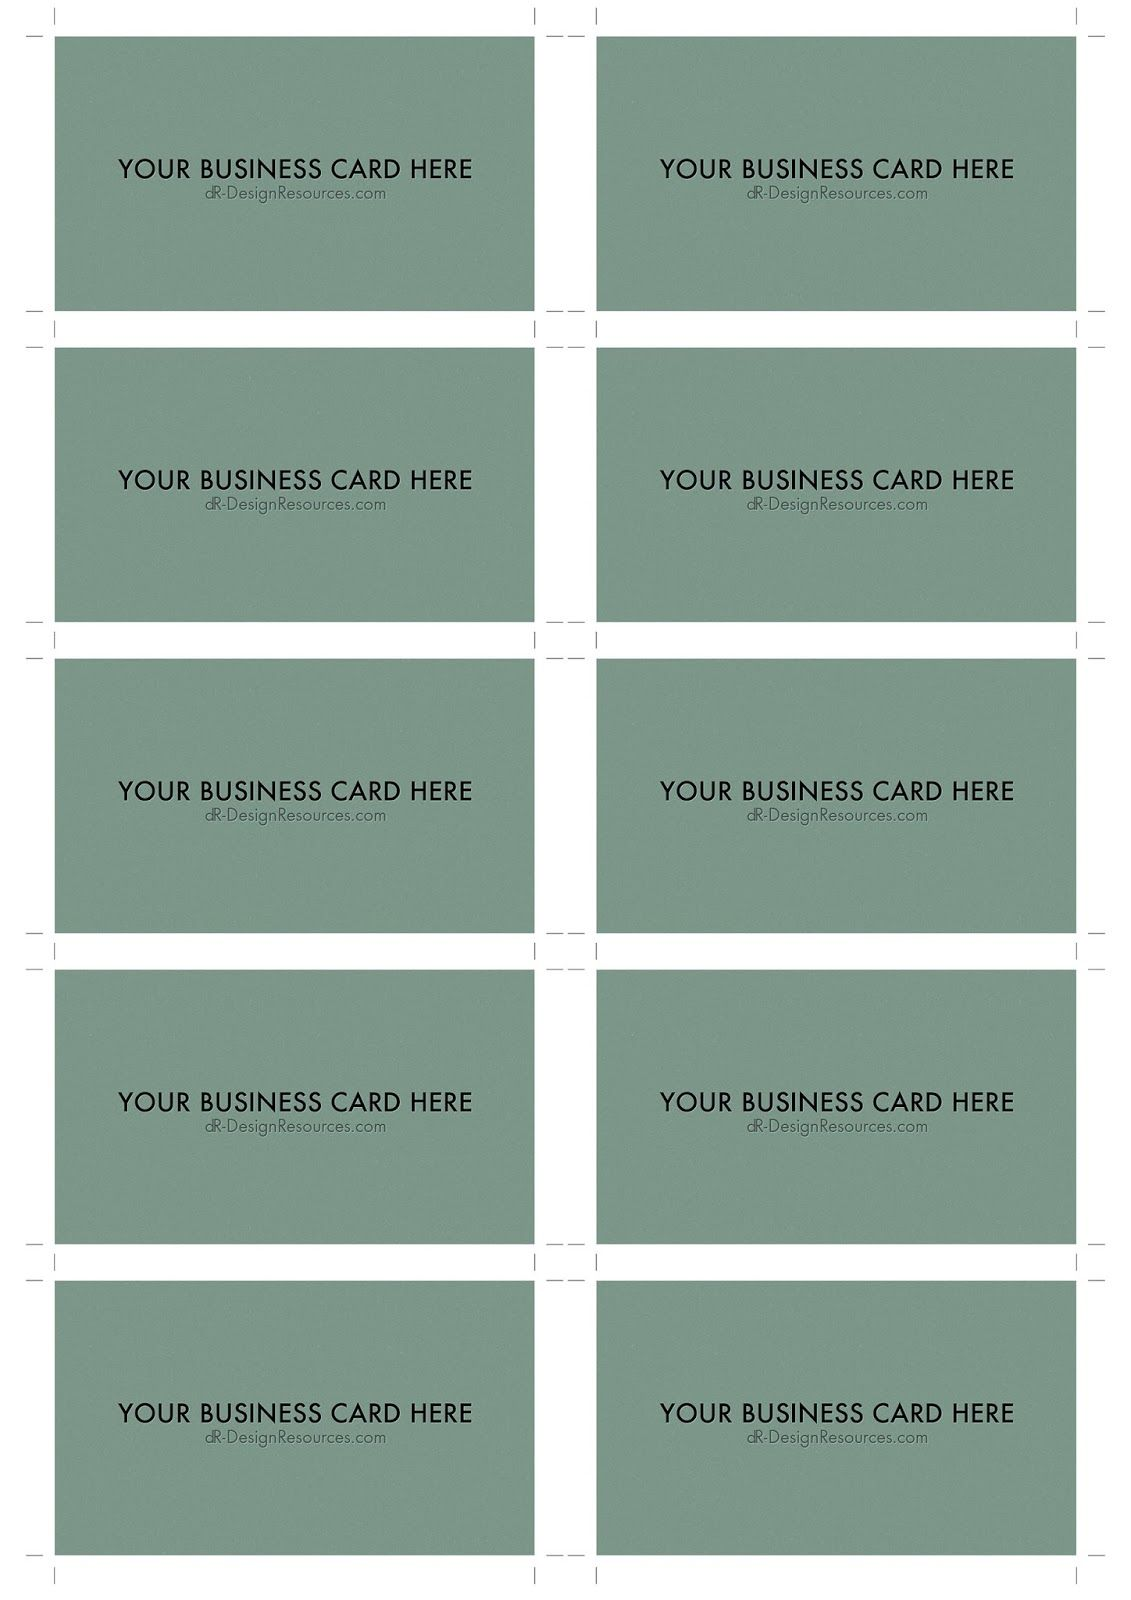 a4 business card template psd 10 per sheet business cards